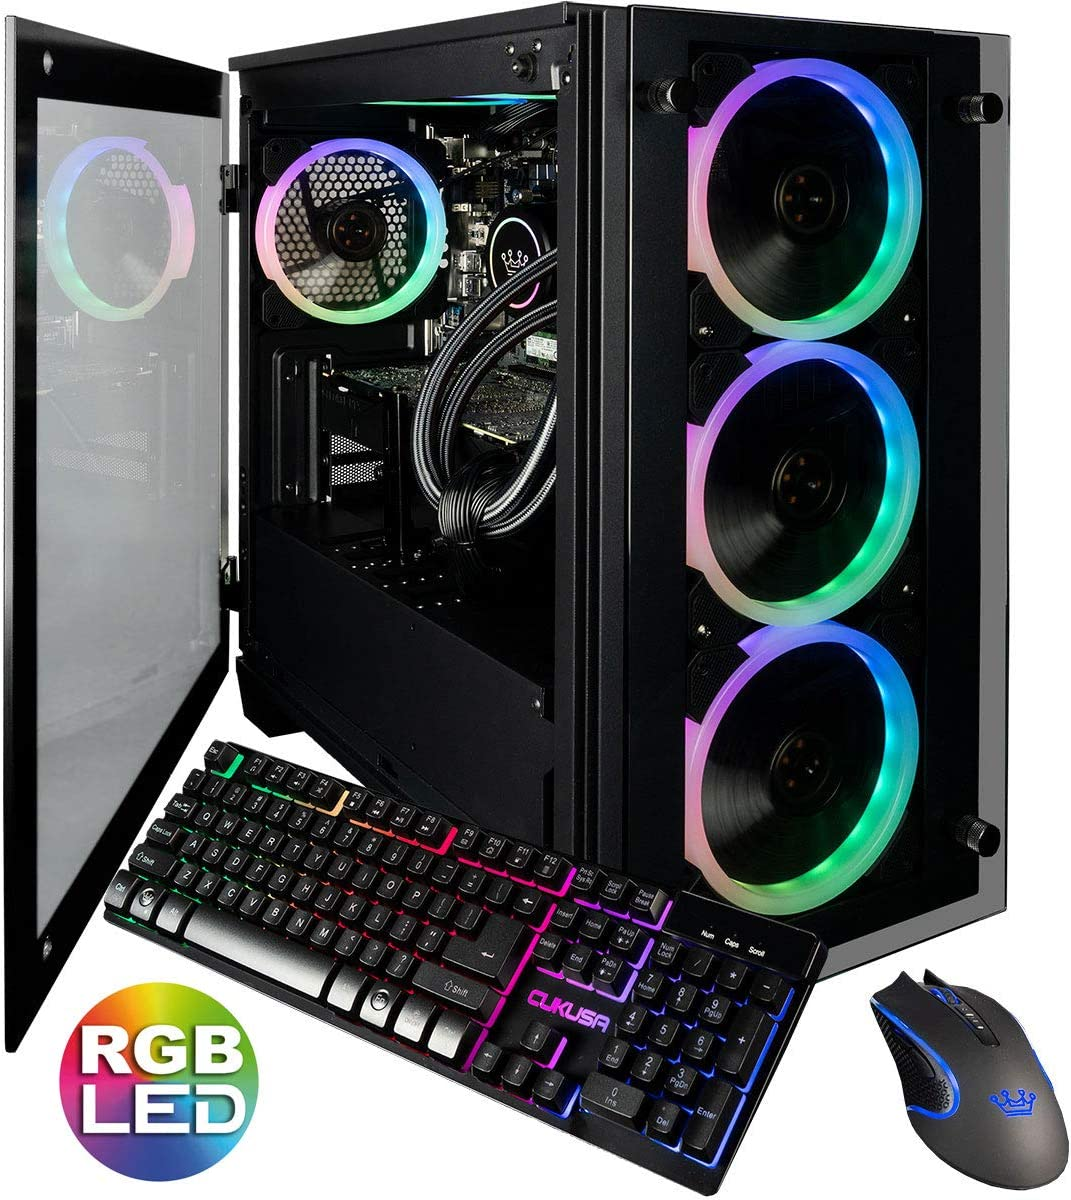 CUK Stratos Micro Gamer Desktop PC (Liquid Cooled Intel i9-9900KF, NVIDIA GeForce RTX 2080 Super 8GB, 32GB RAM, 1TB NVMe SSD + 2TB HDD, 750W Gold PSU, Windows 10 Home) Gaming Computer